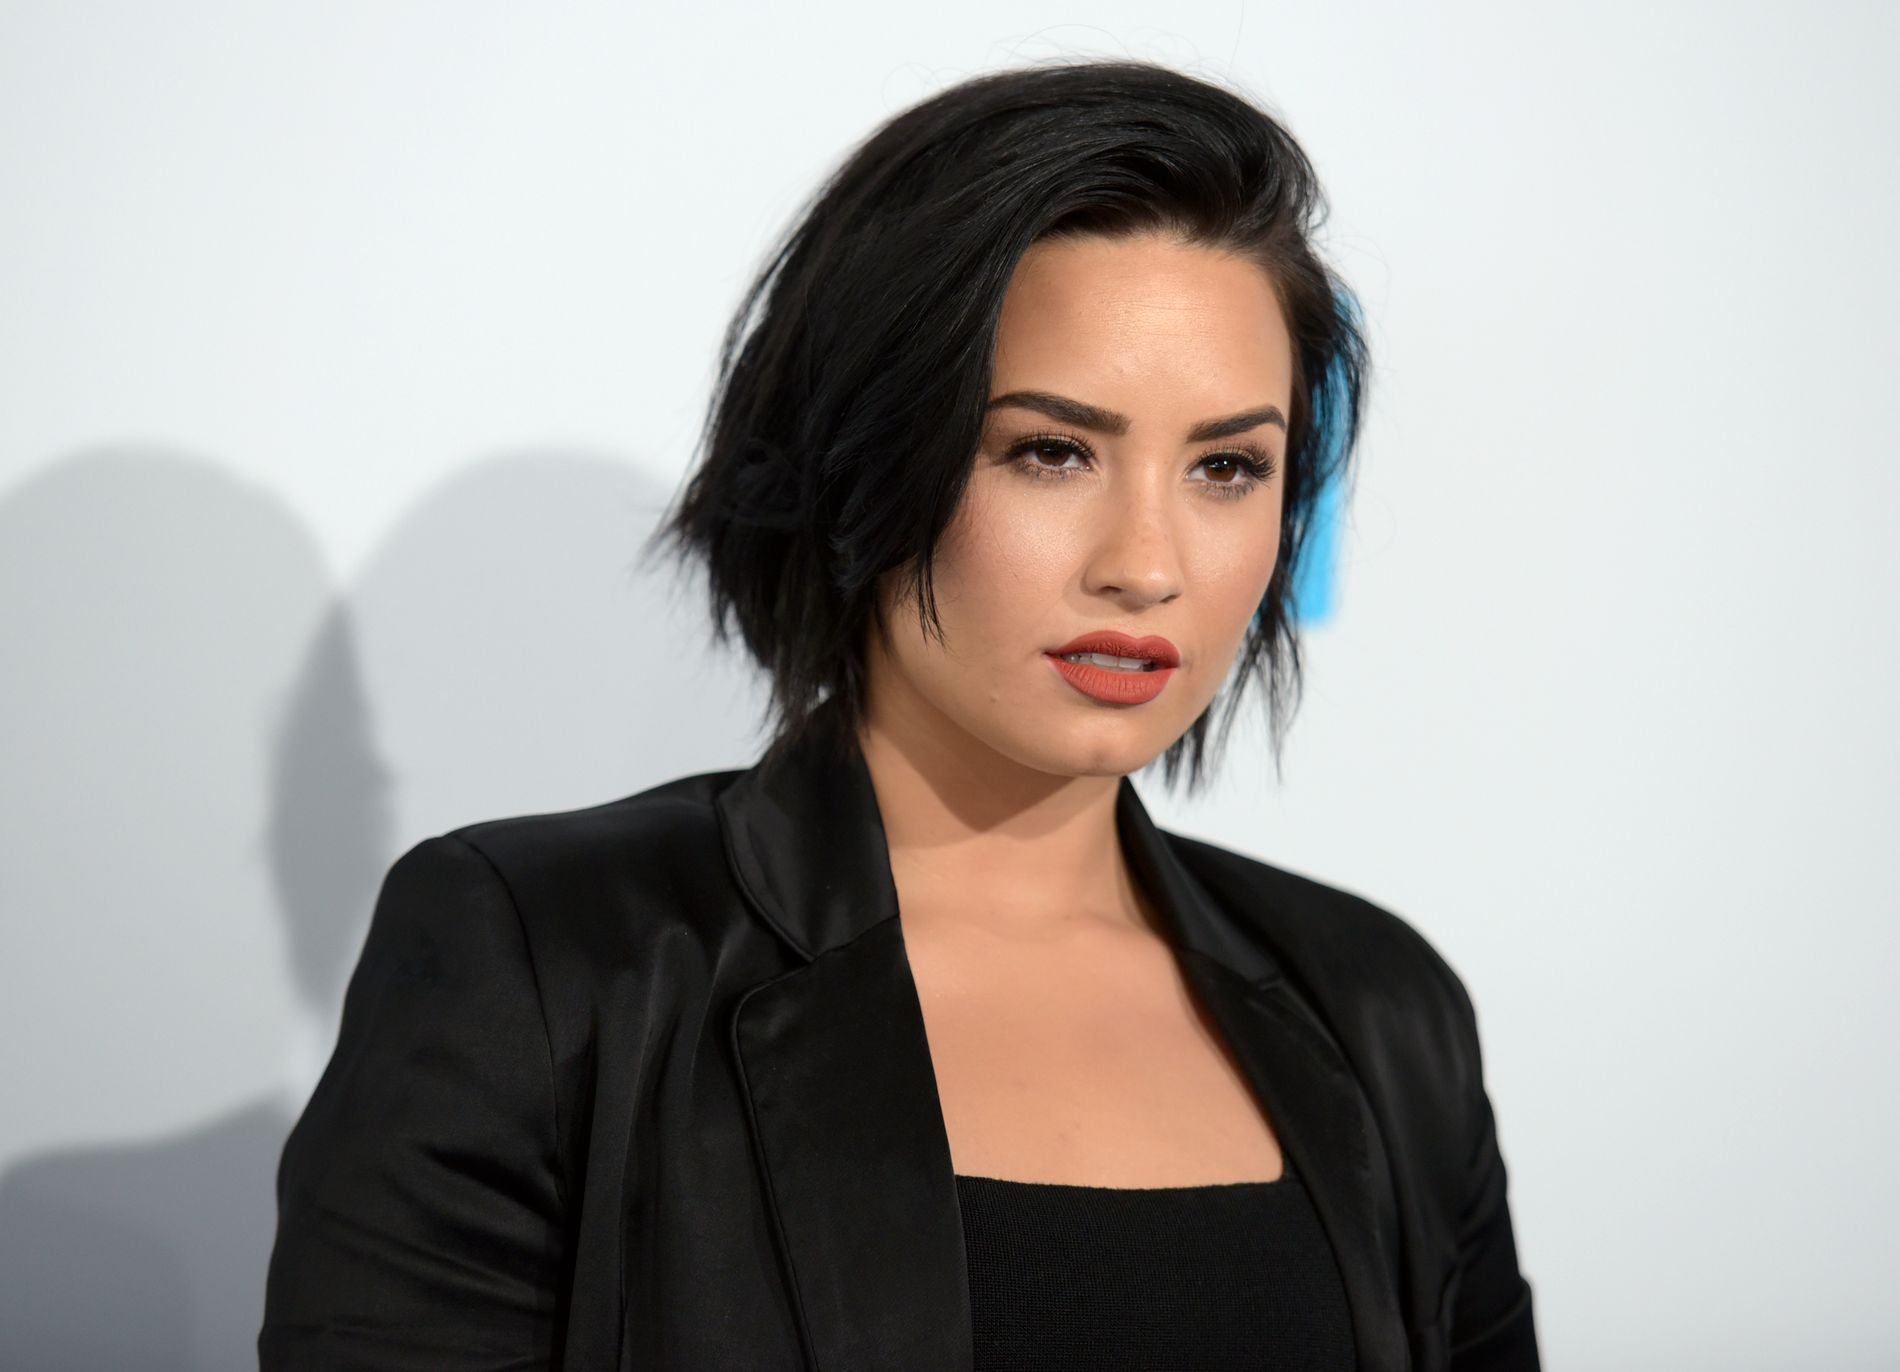 Demi Lovato after the overdose: is sober